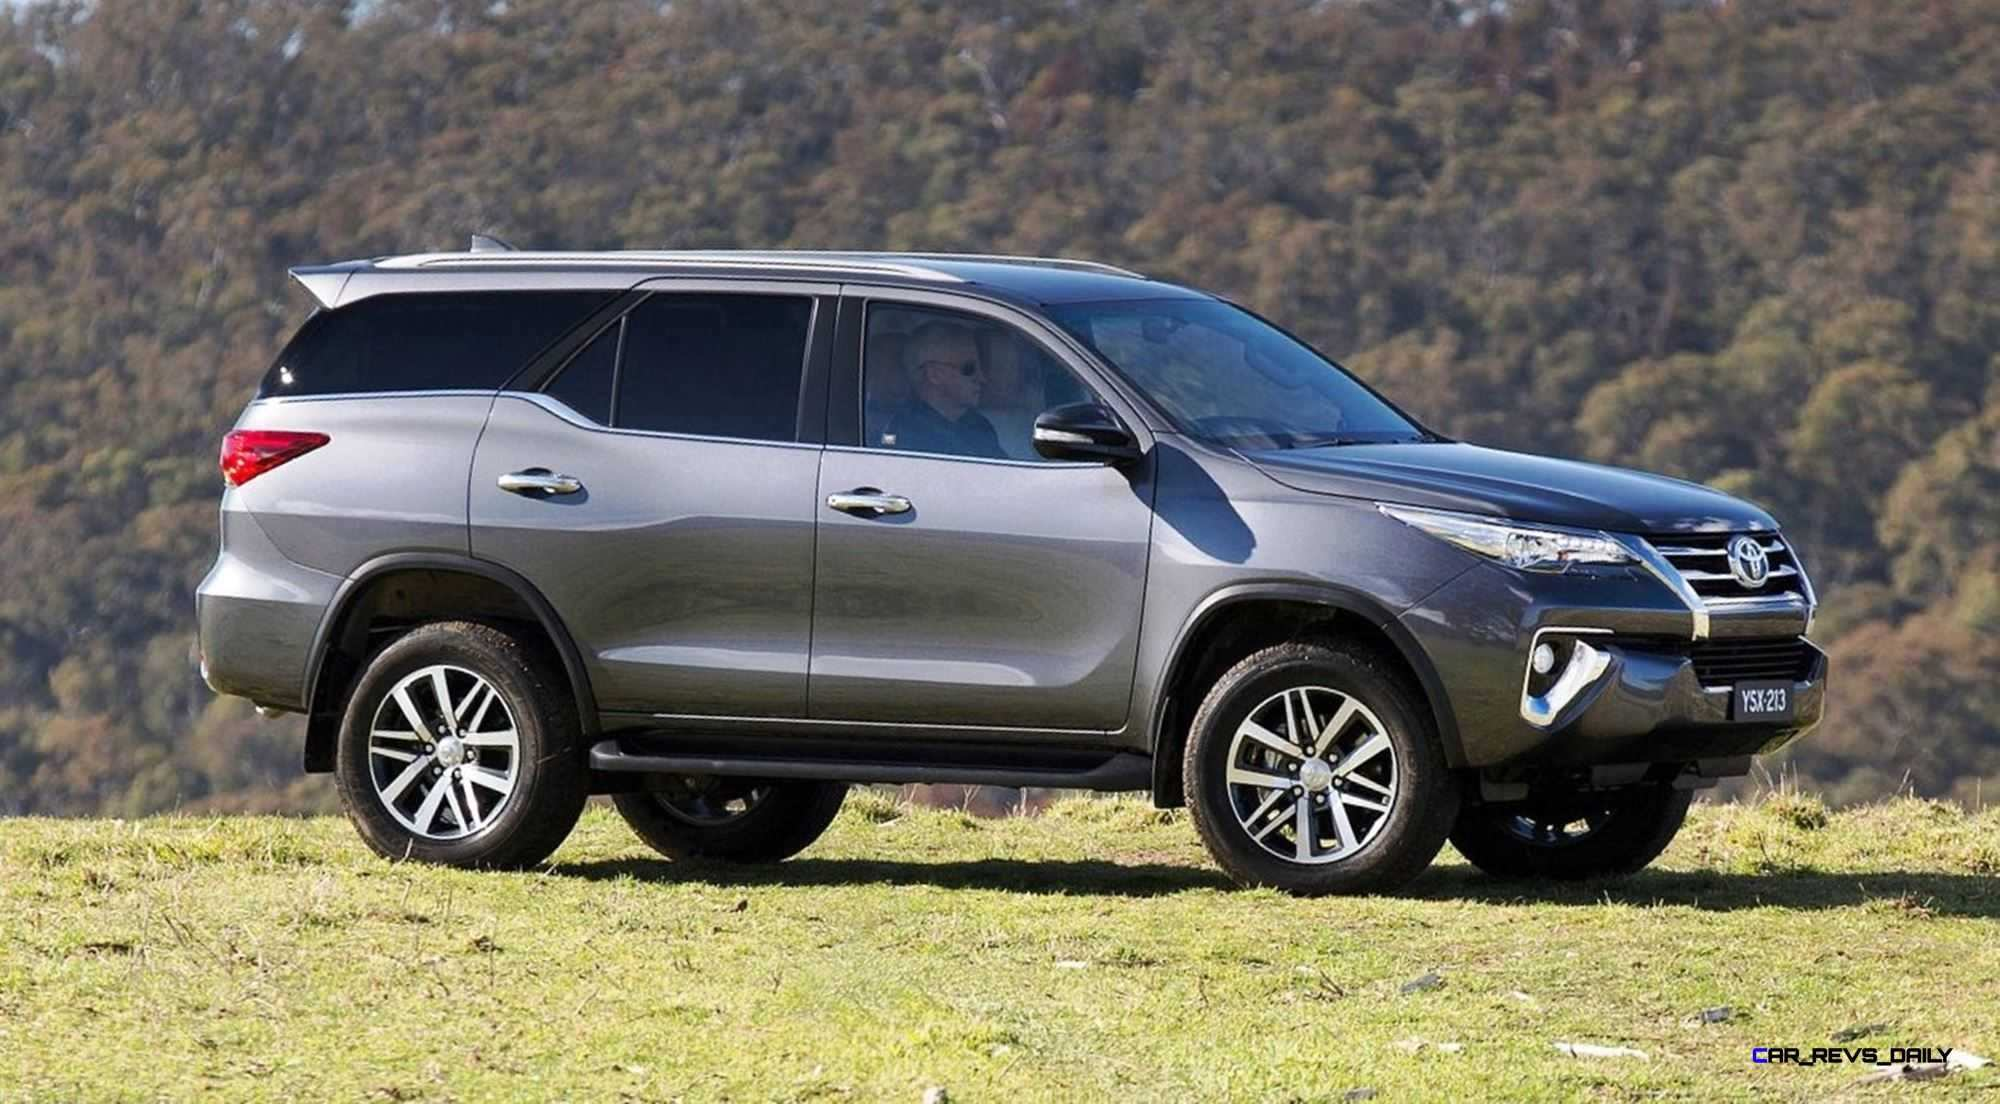 51 New 2020 Toyota Fortuner Interior by 2020 Toyota Fortuner